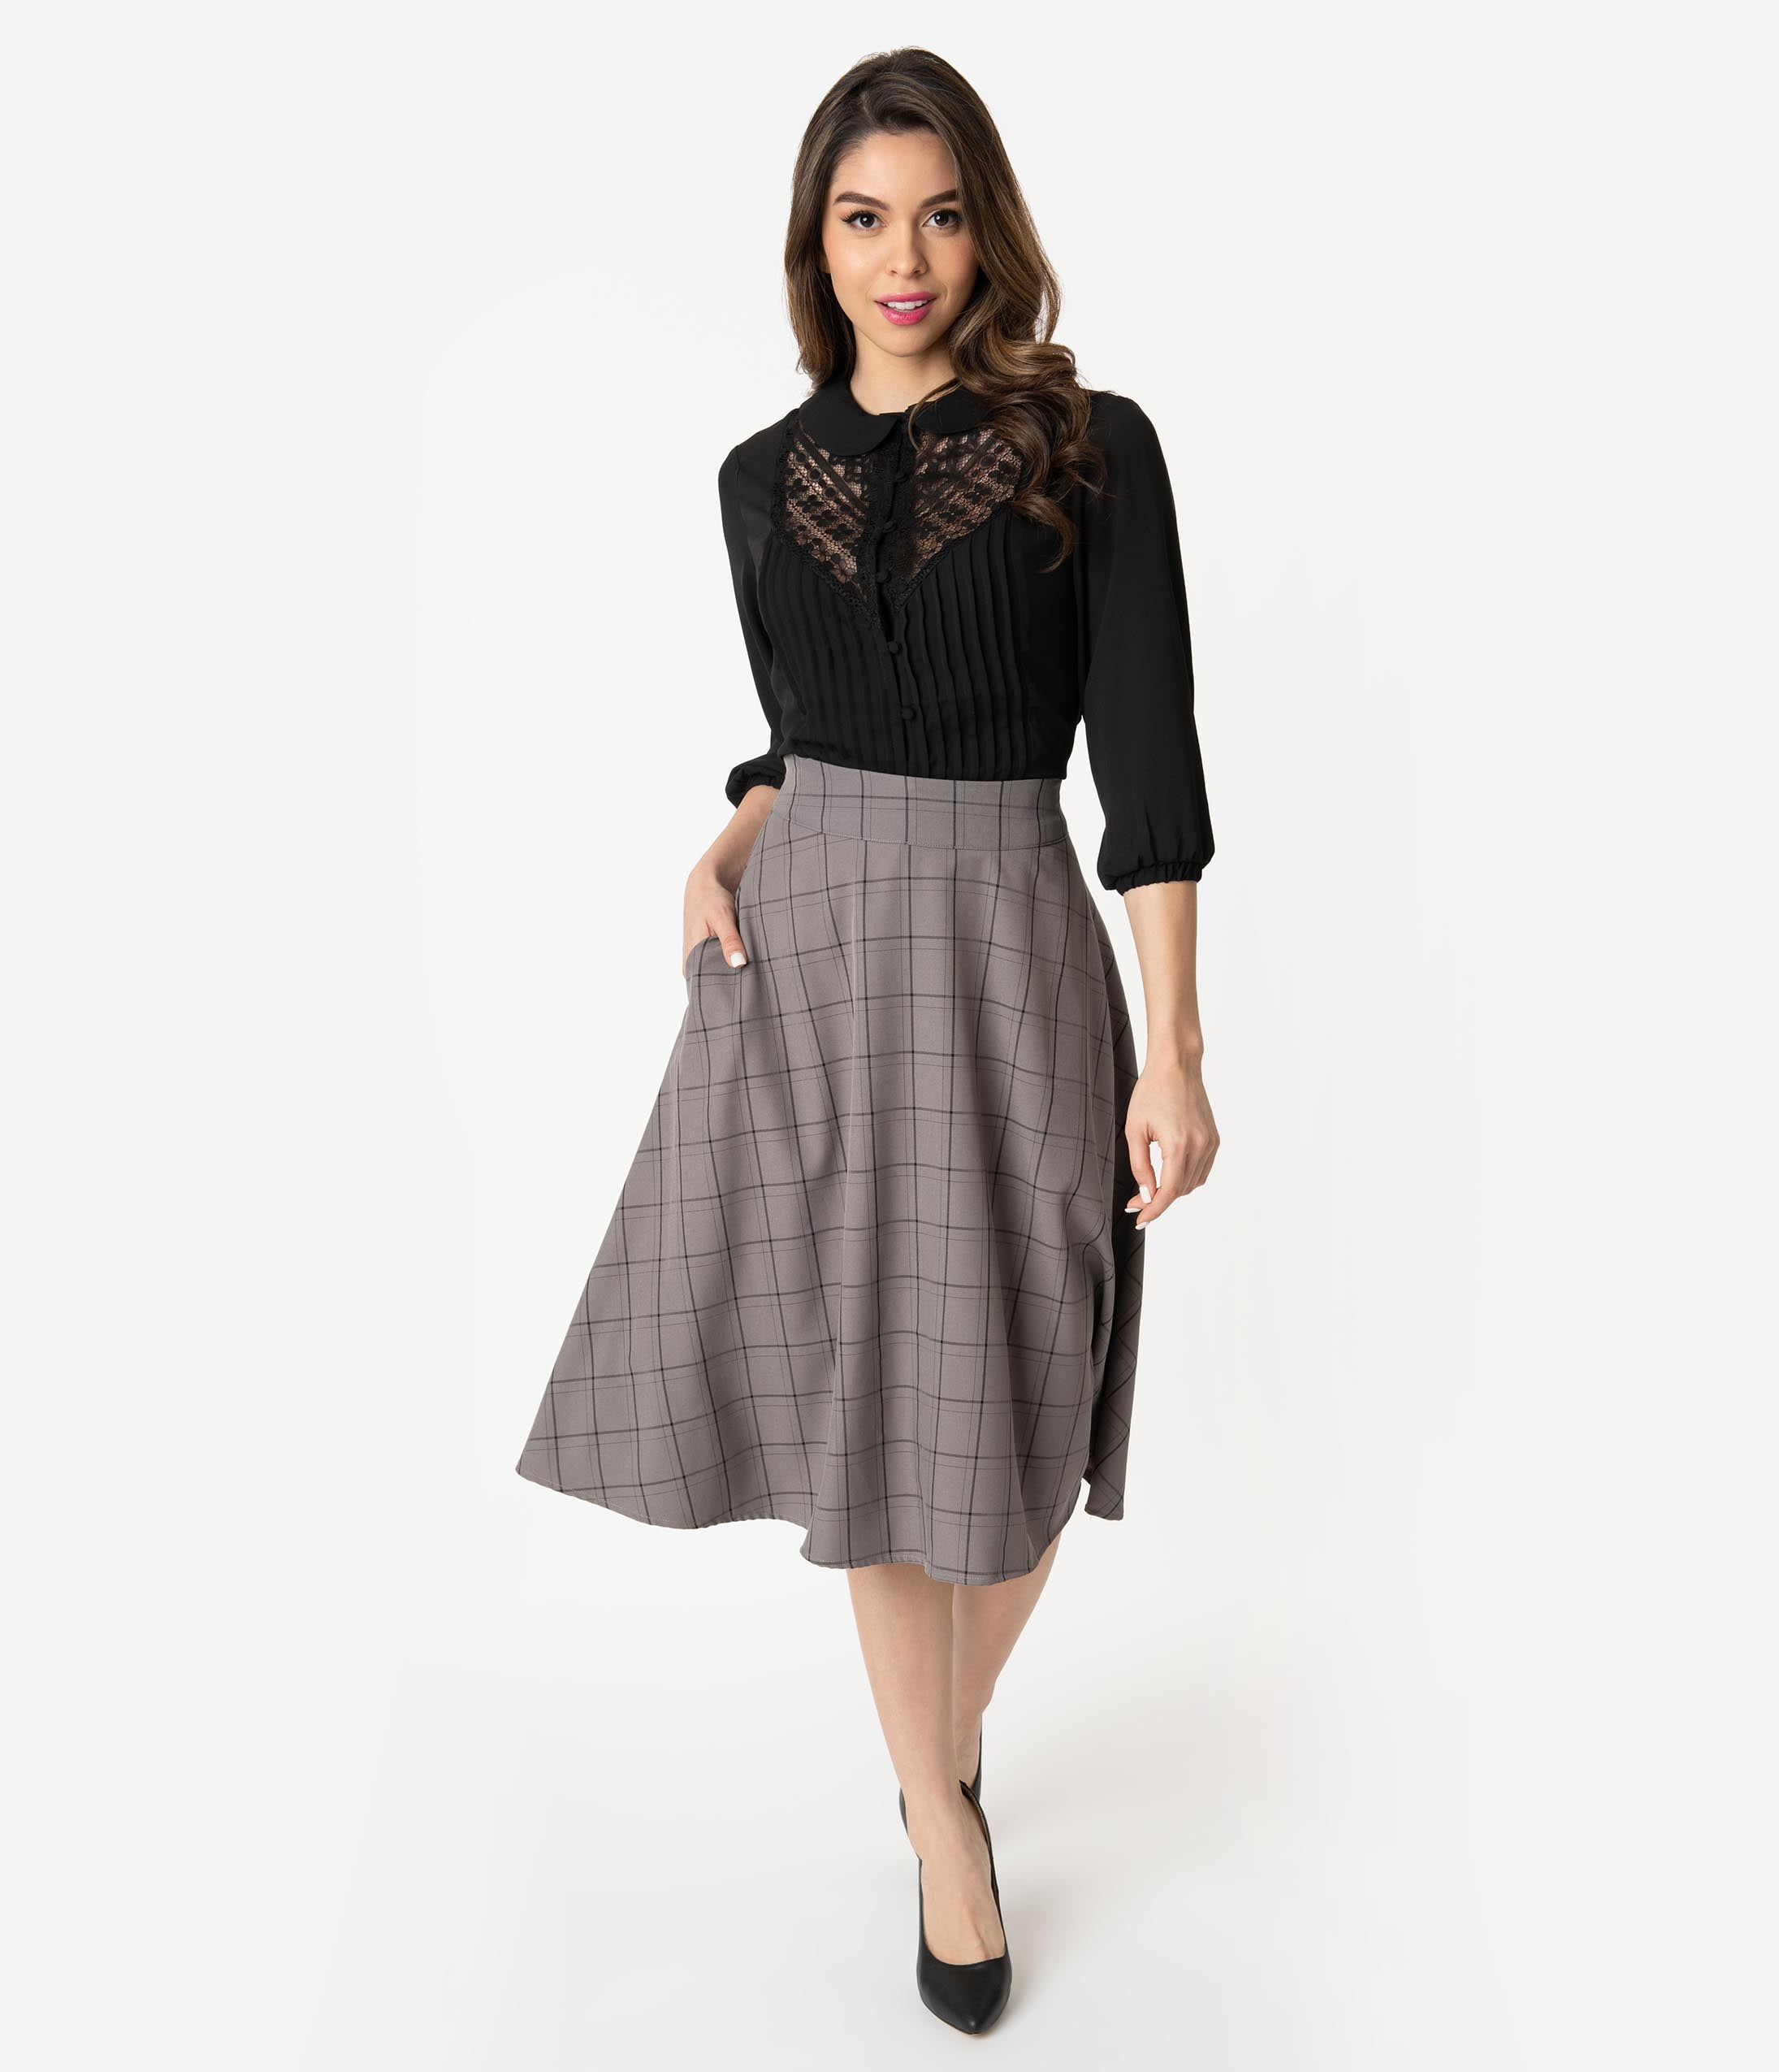 1950s Swing Skirt, Poodle Skirt, Pencil Skirts Unique Vintage Retro Style Grey  Black Windowpane High Waist Vivien Swing Skirt $58.00 AT vintagedancer.com